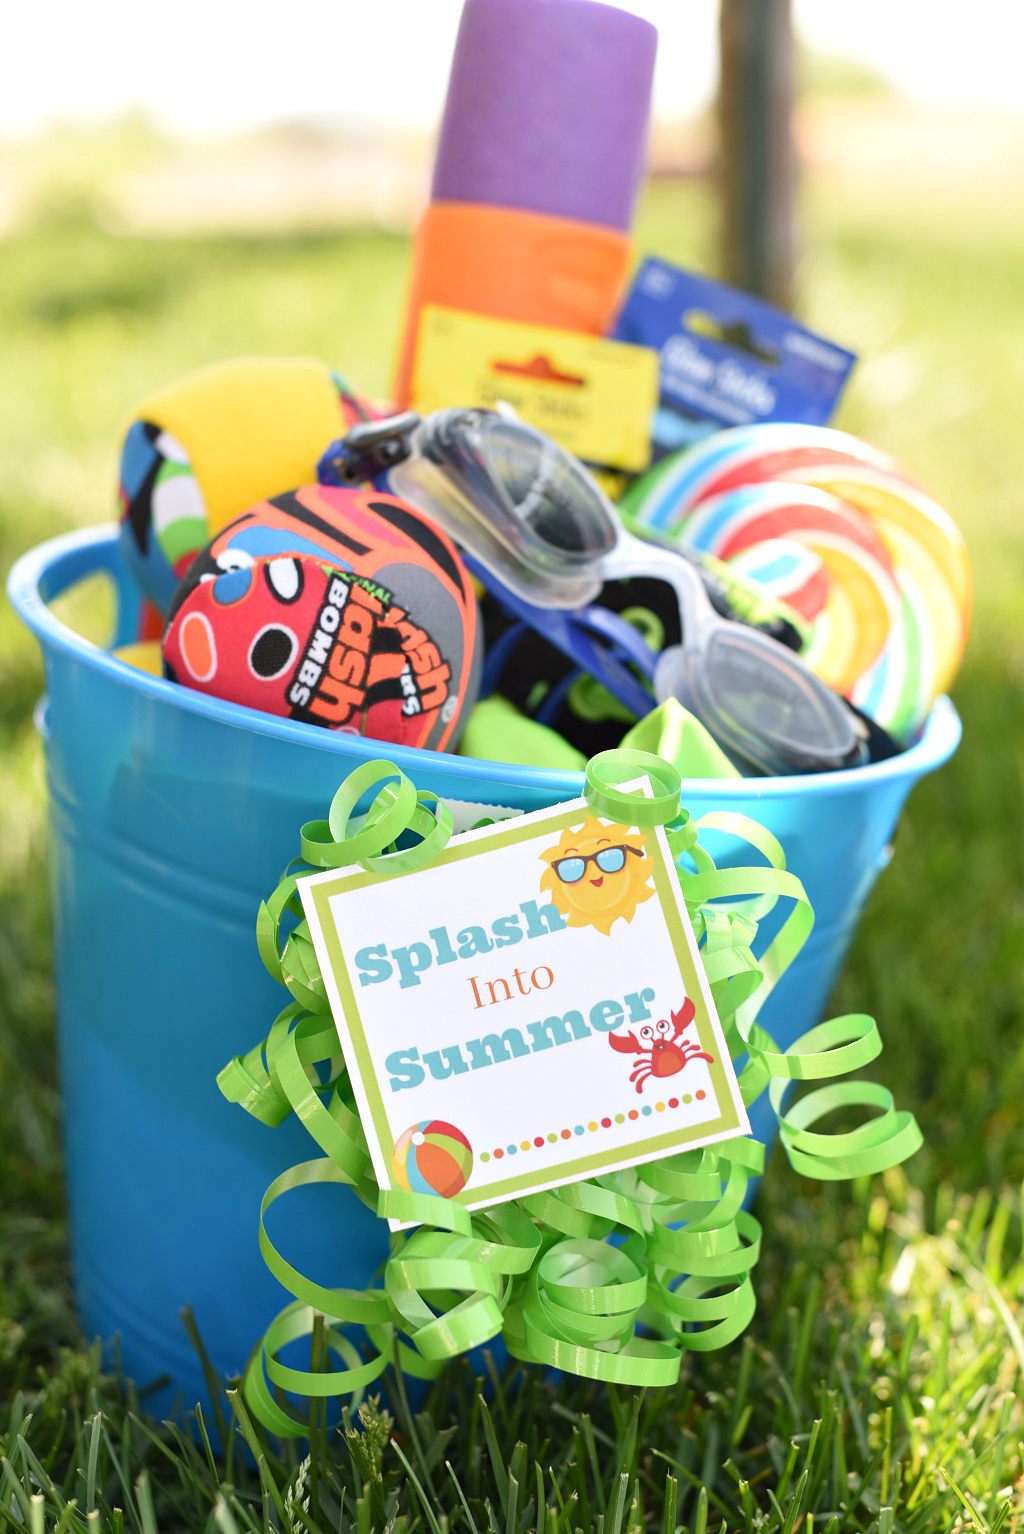 Sand bucket with water toys, goggles, and candy to make a gift.